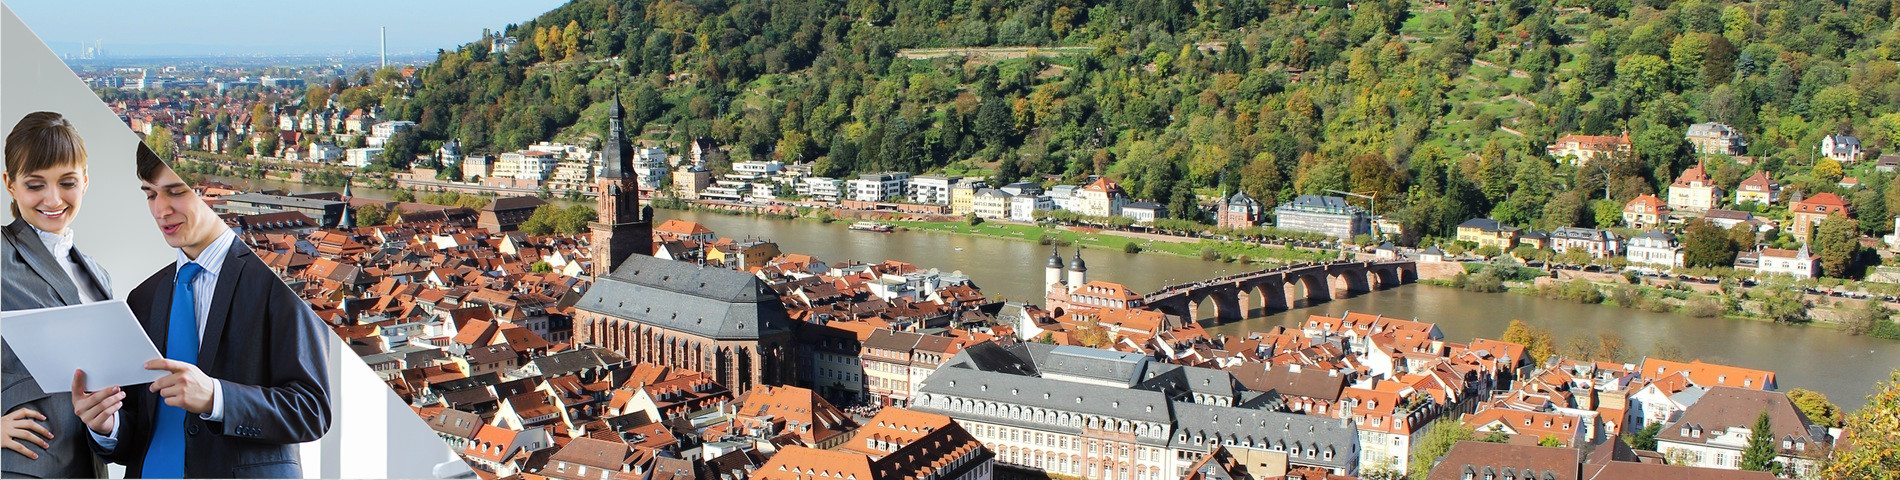 Heidelberg - Business Privat